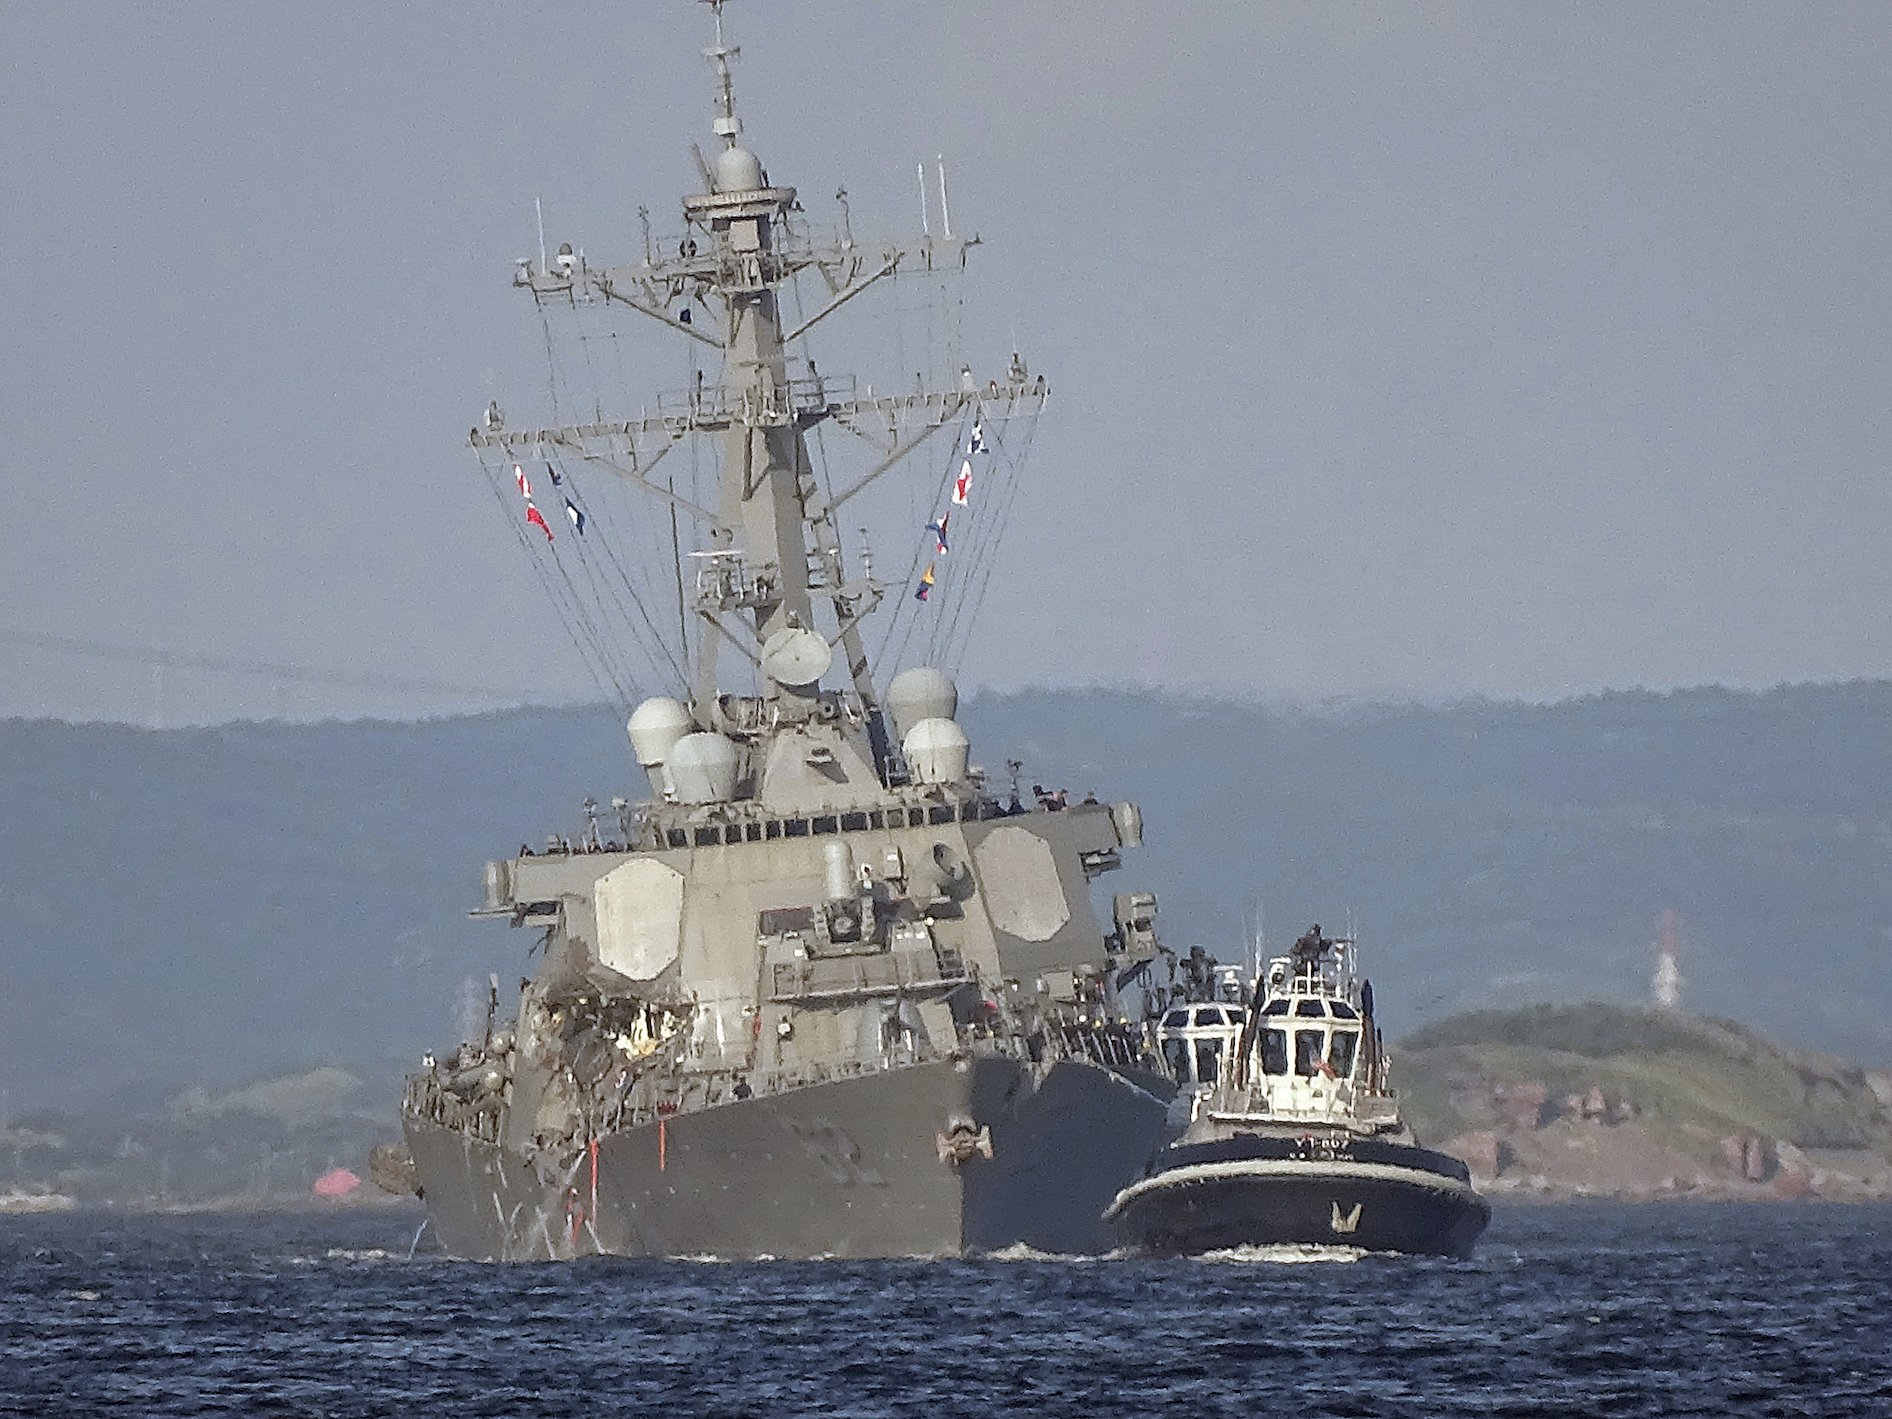 The USS Fitzgerald in tow after the collision